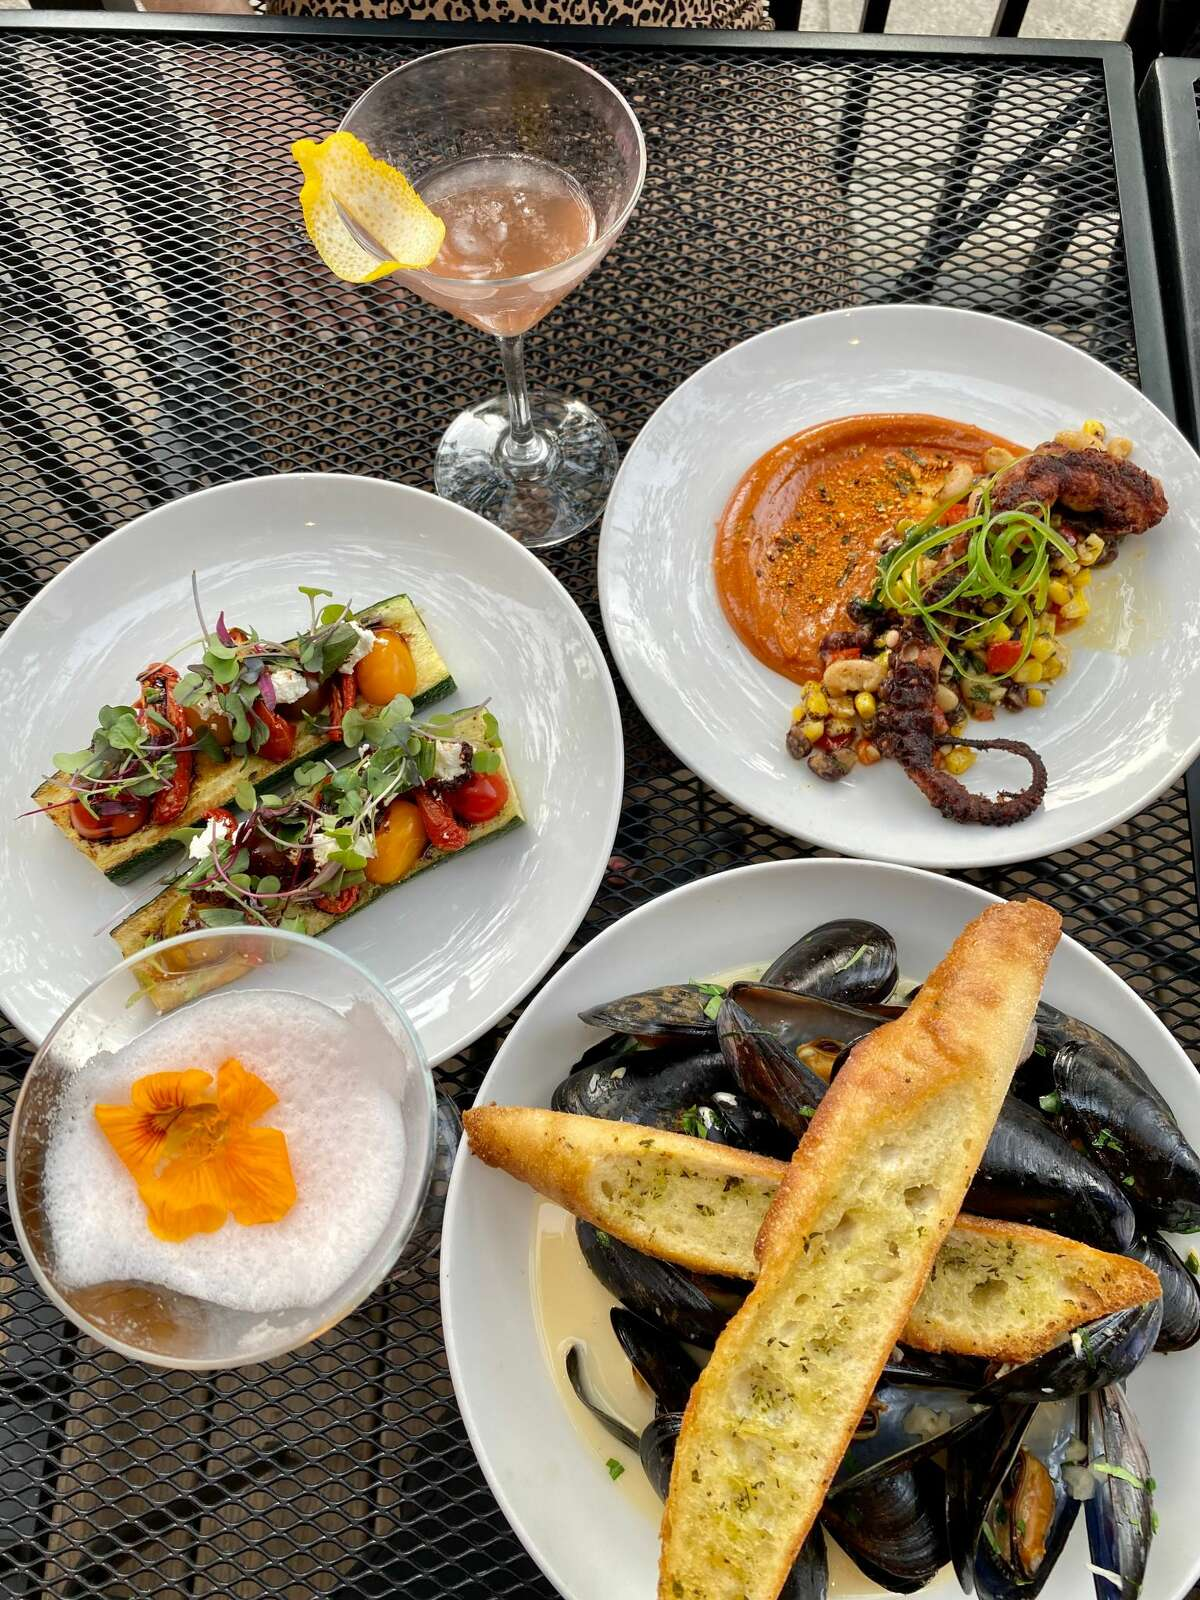 Starters at The Merc in Saratoga Springs including, clockwise from left, stuffed zucchini, octopus with Asian spices and mussels in a wine-garlic sauce. (Susie Davidson Powell/for the Times Union)